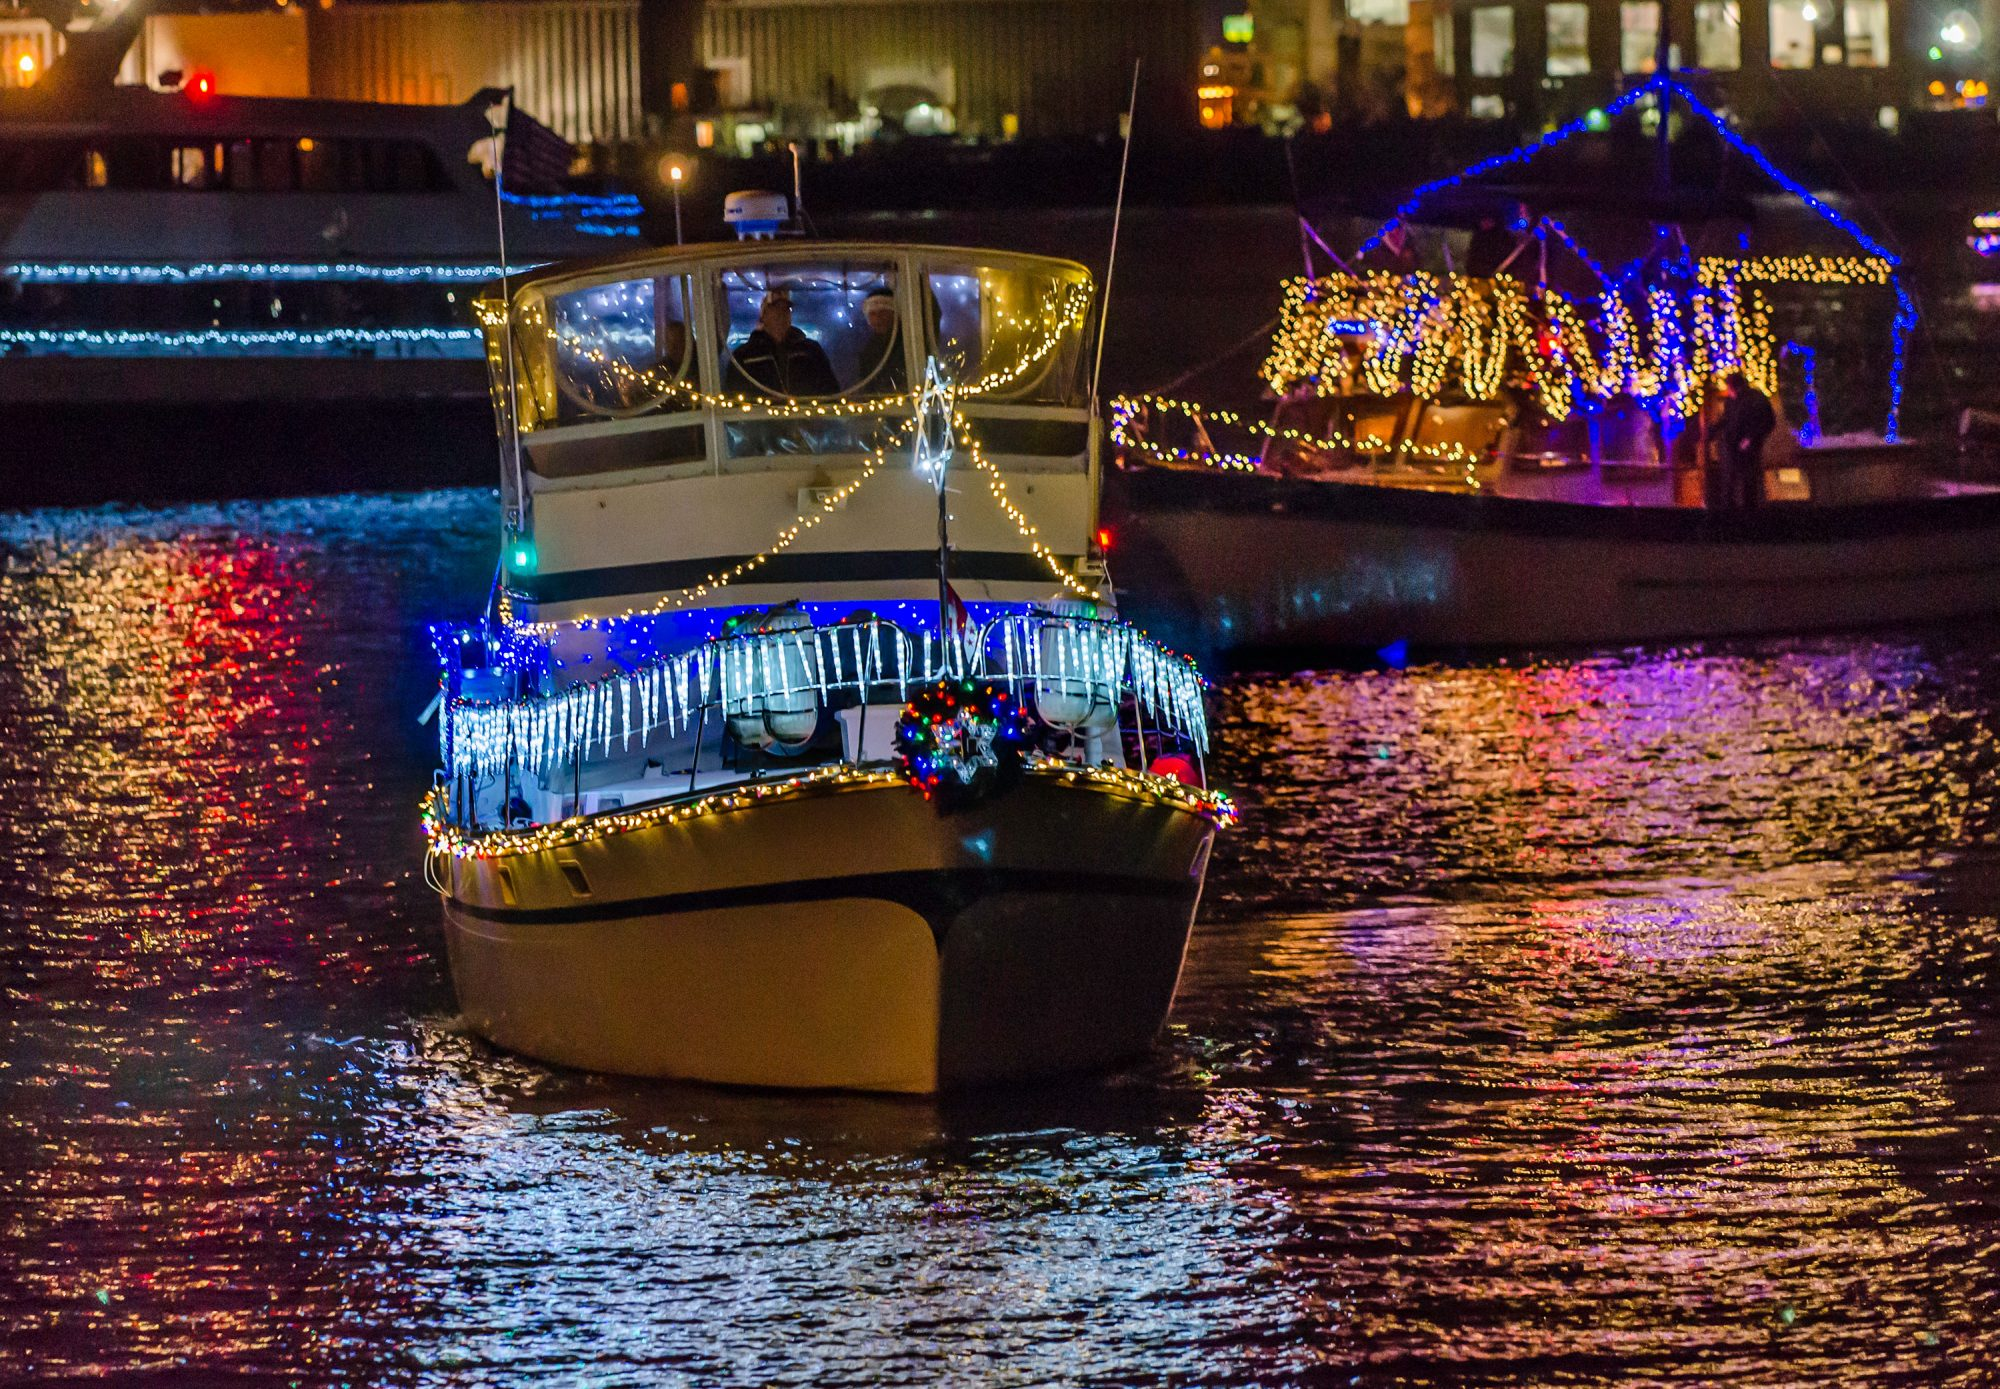 Christmas Lights + Boats = Hallmark Moment